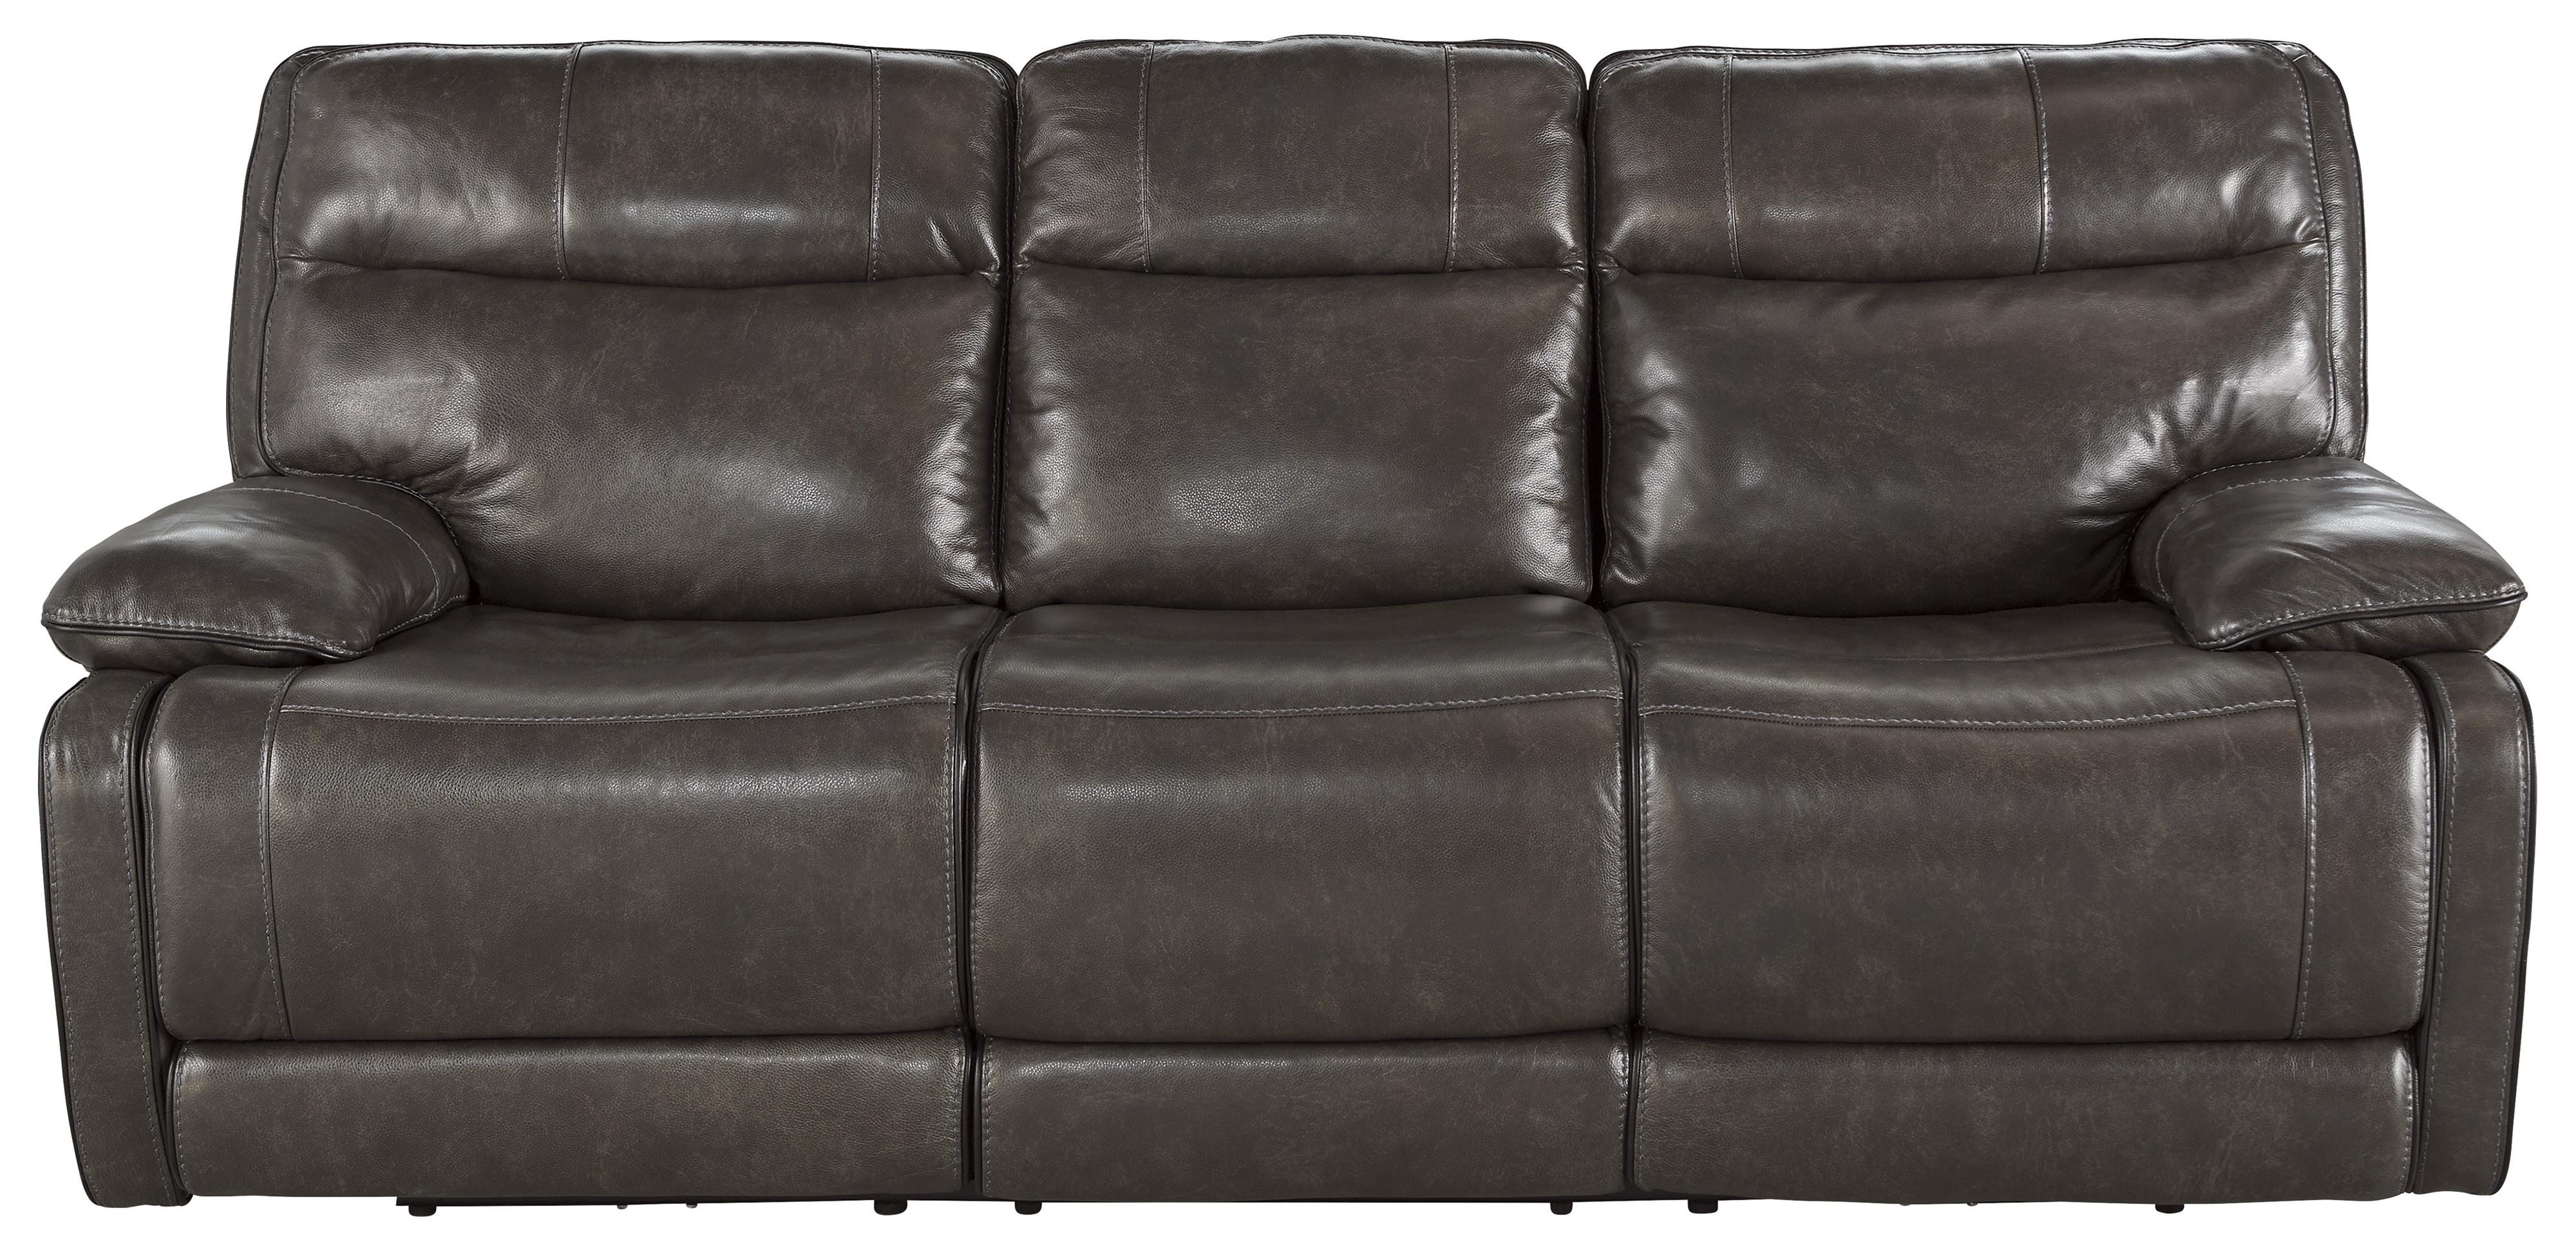 Signature Design by Ashley Palladum Reclining Sofa - Item Number: U7260188